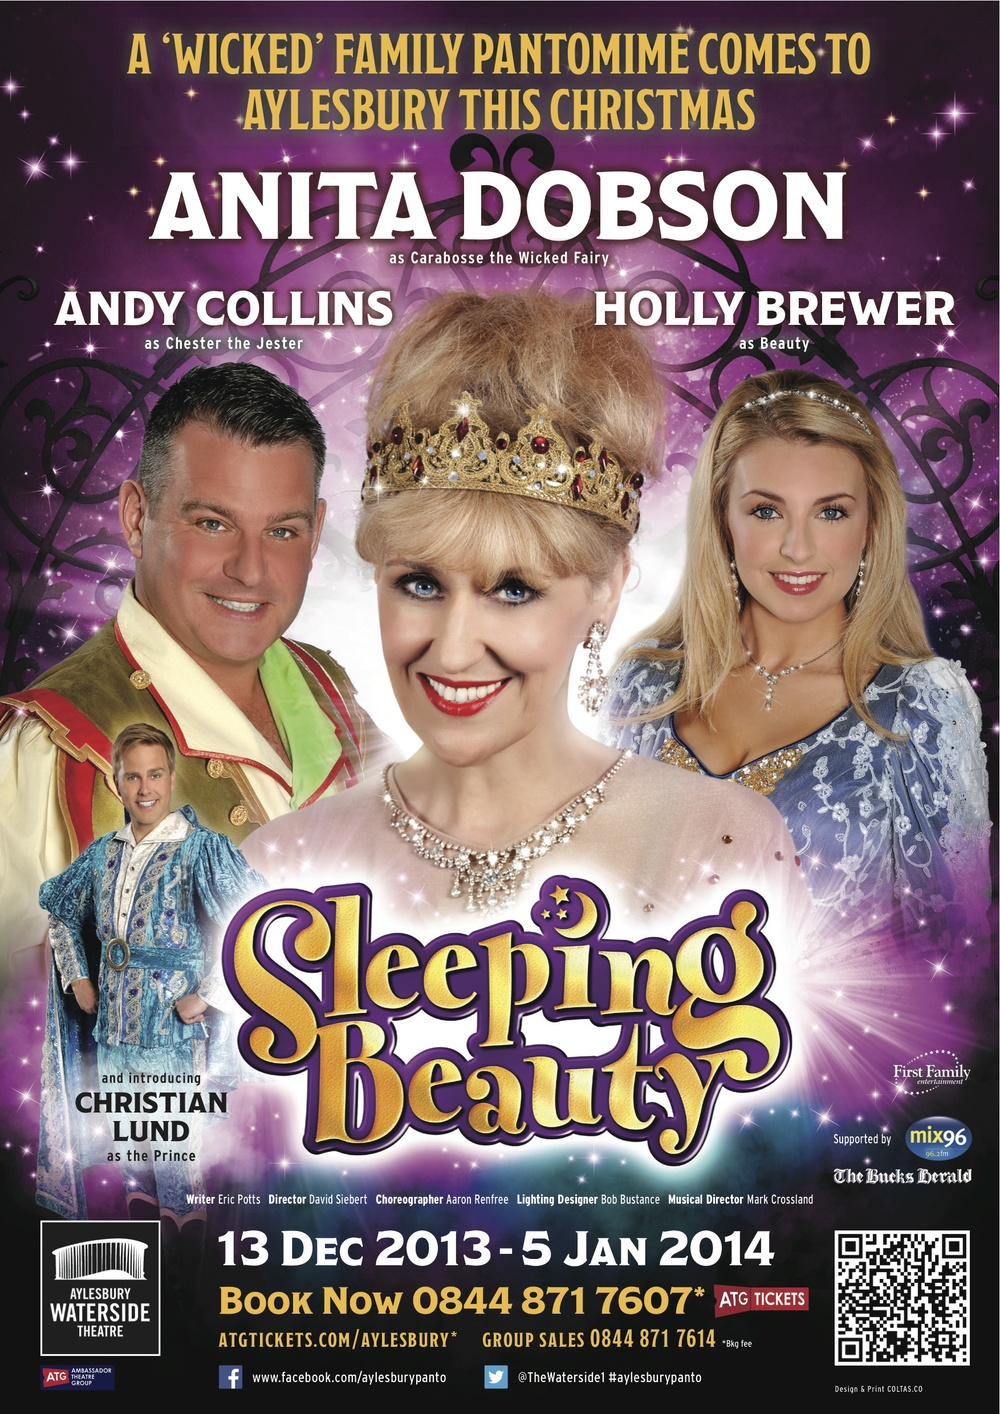 December 2013/January 2014    Playing 'Beauty' in Sleeping Beauty at Aylesbury Waterside Theatre.